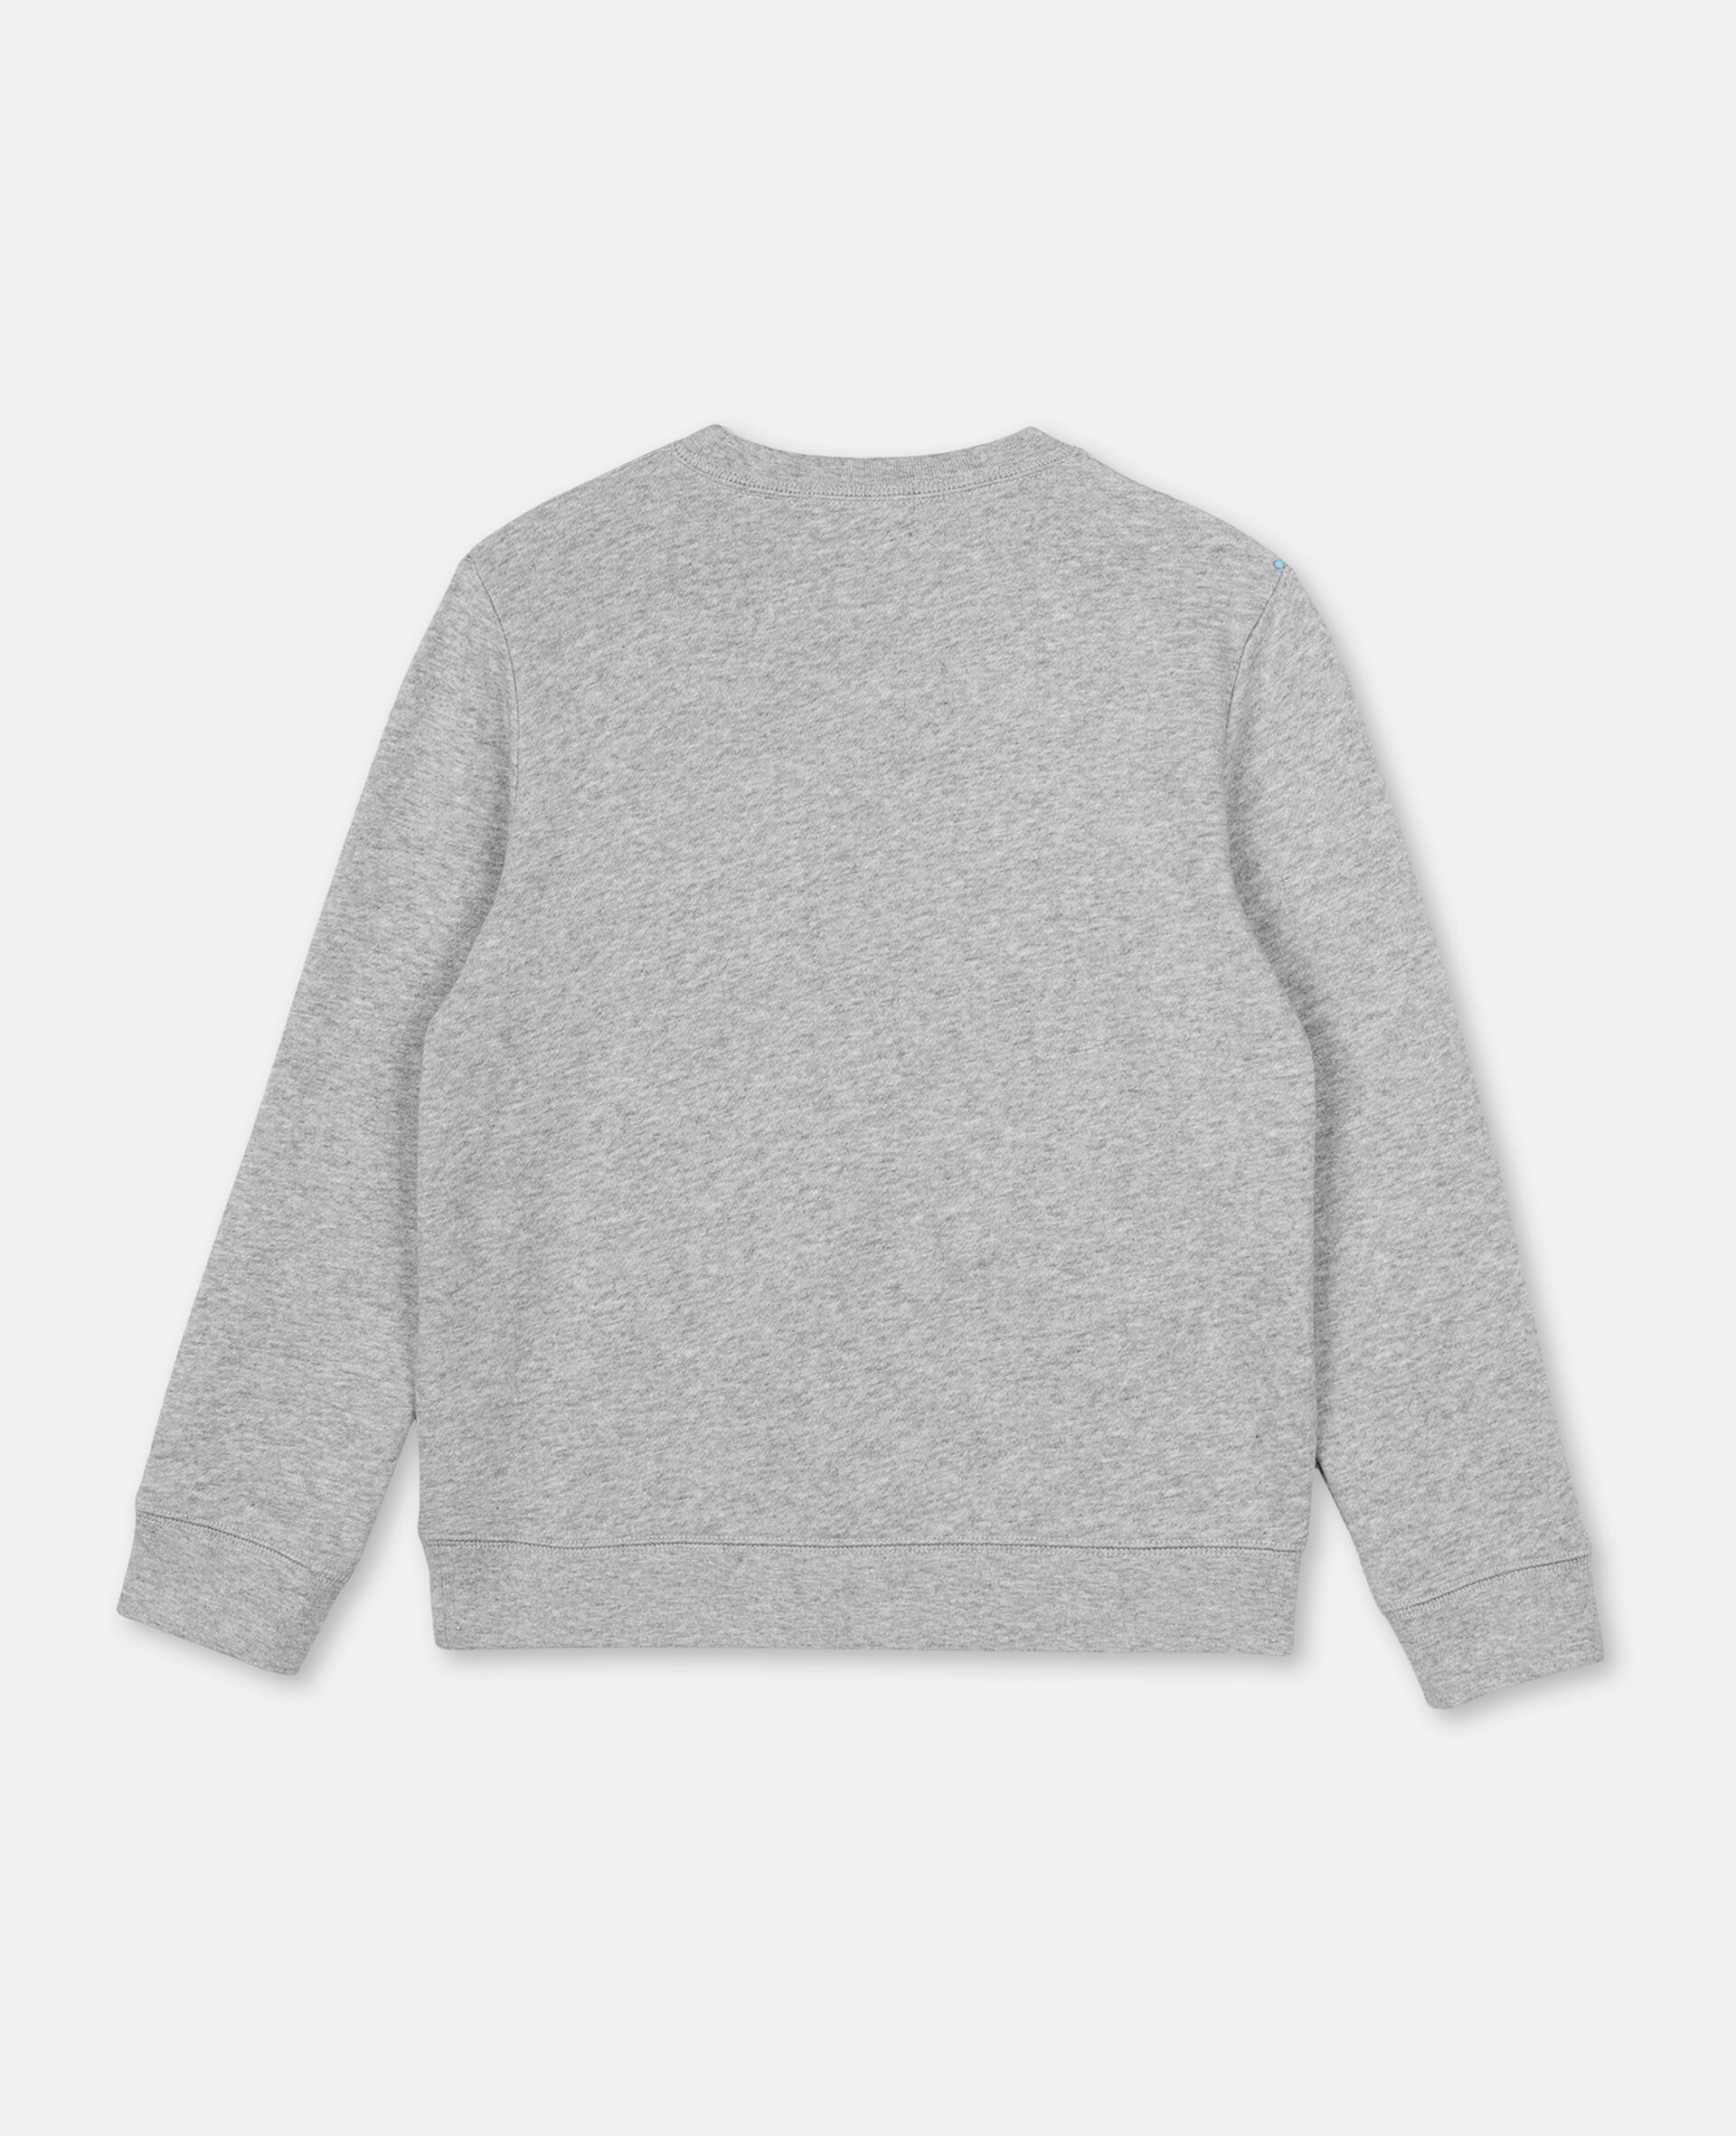 Pirate Cotton Sweatshirt -Grey-large image number 3